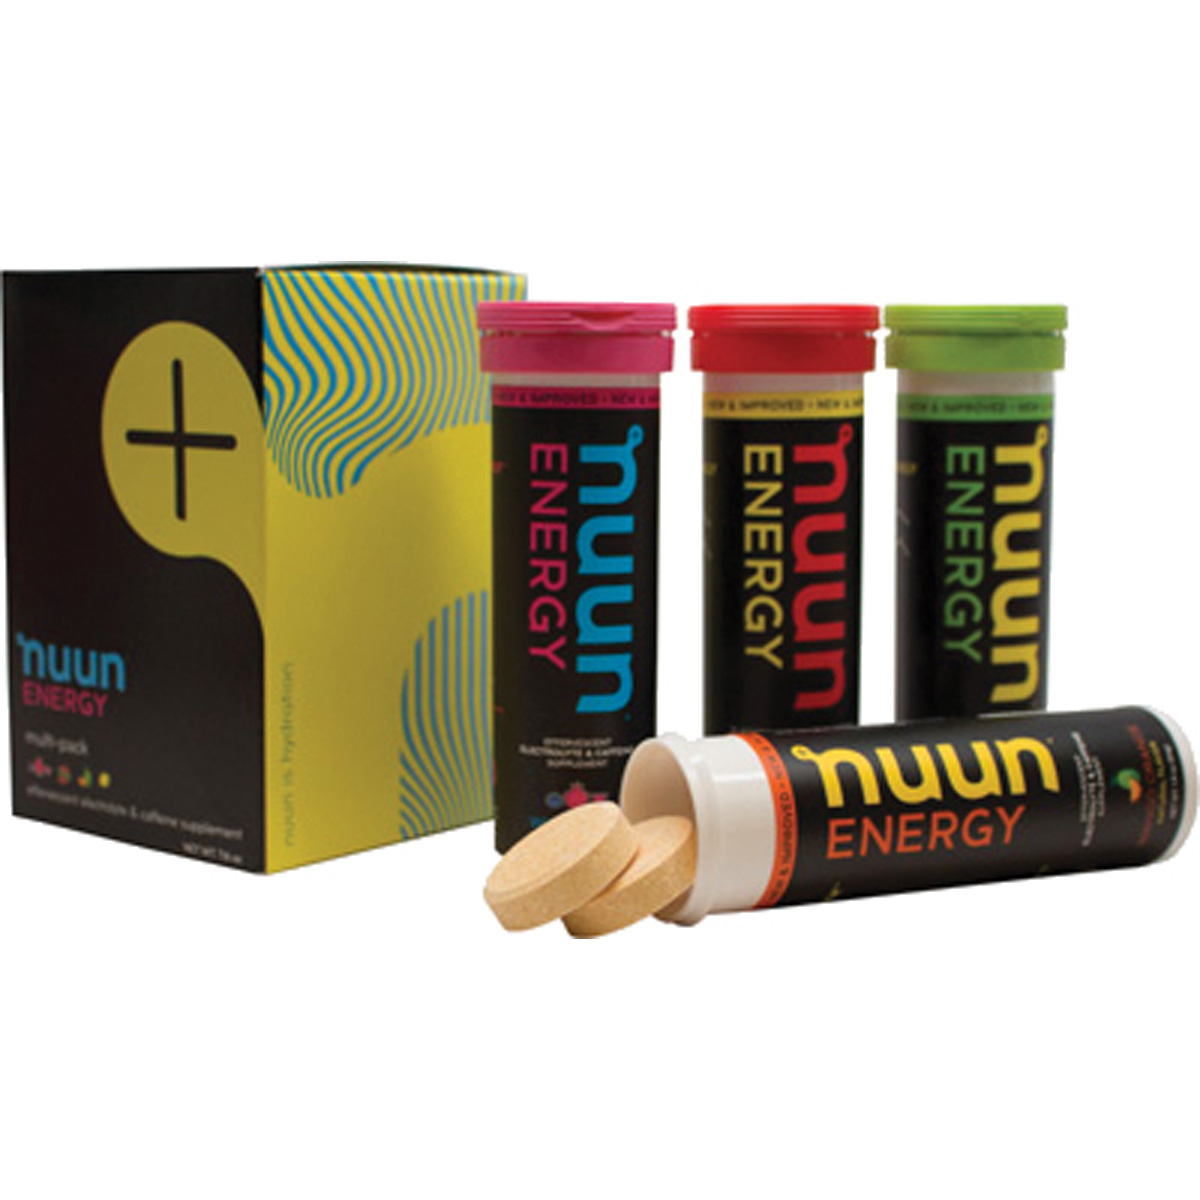 Nuun ENERGY Electrolyte/Caffeine Enhanced Supplement Hydration Tablets - Mixed 4-Pack (Wild Berry/Fresh Lime/ Cherry Lim